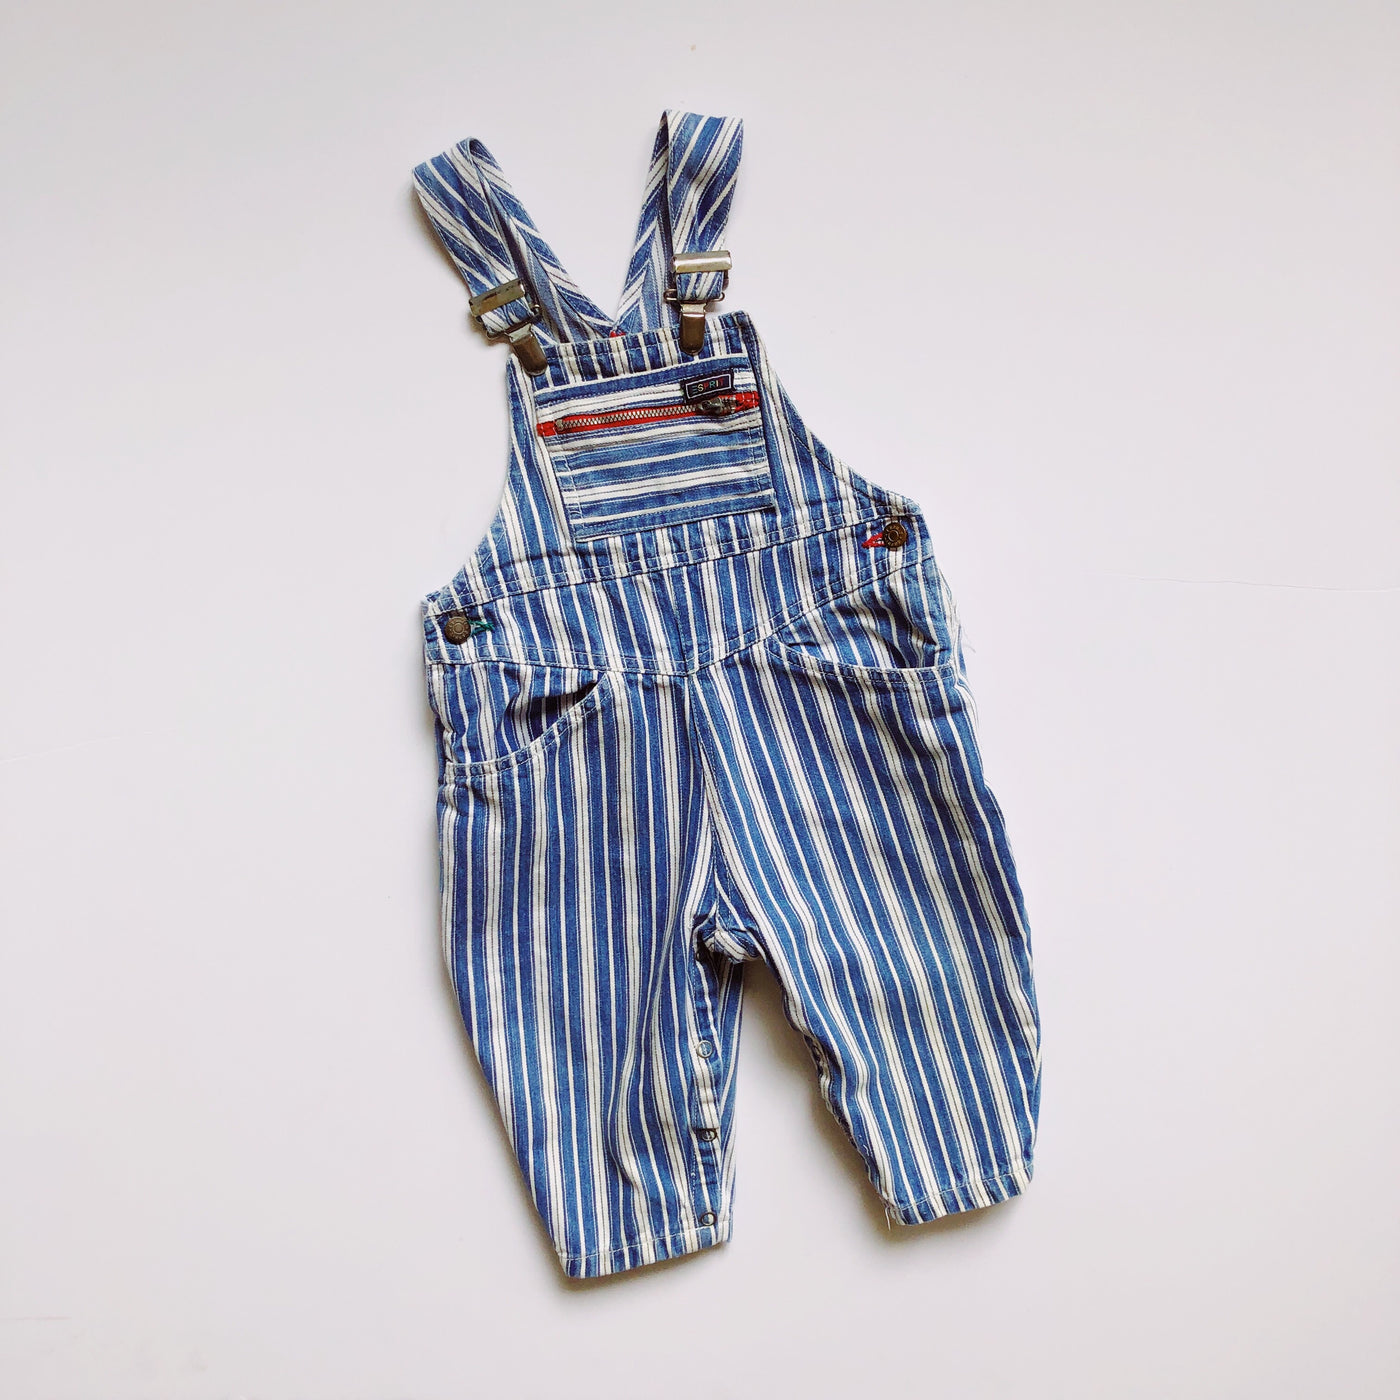 Vintage Esprit Striped Denim Overalls / Size 2T